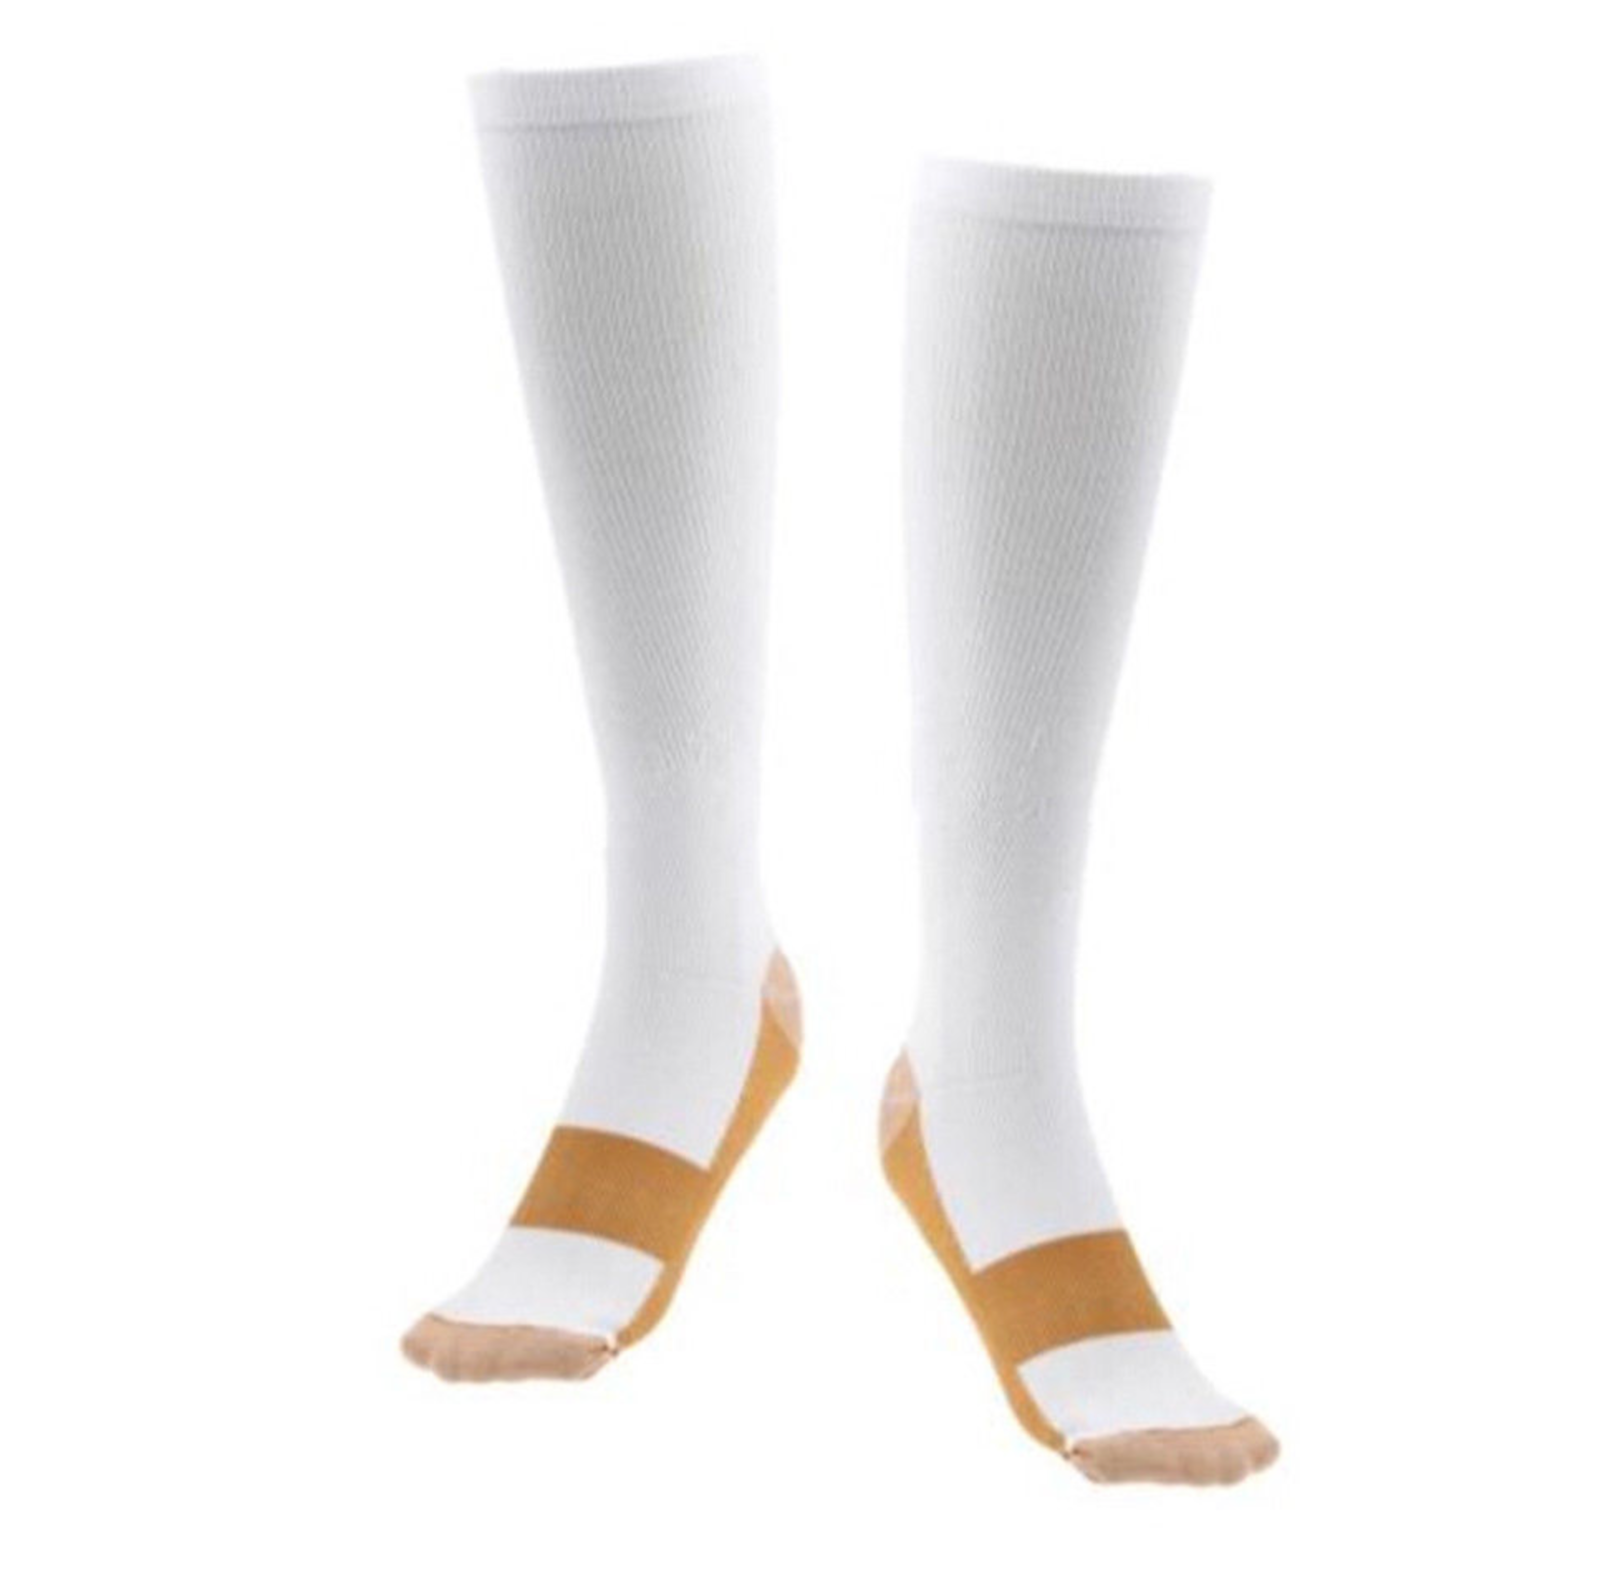 Copper Compression Stockings 20-30mmHg Support Socks Miracle Calf Men's Women's 4